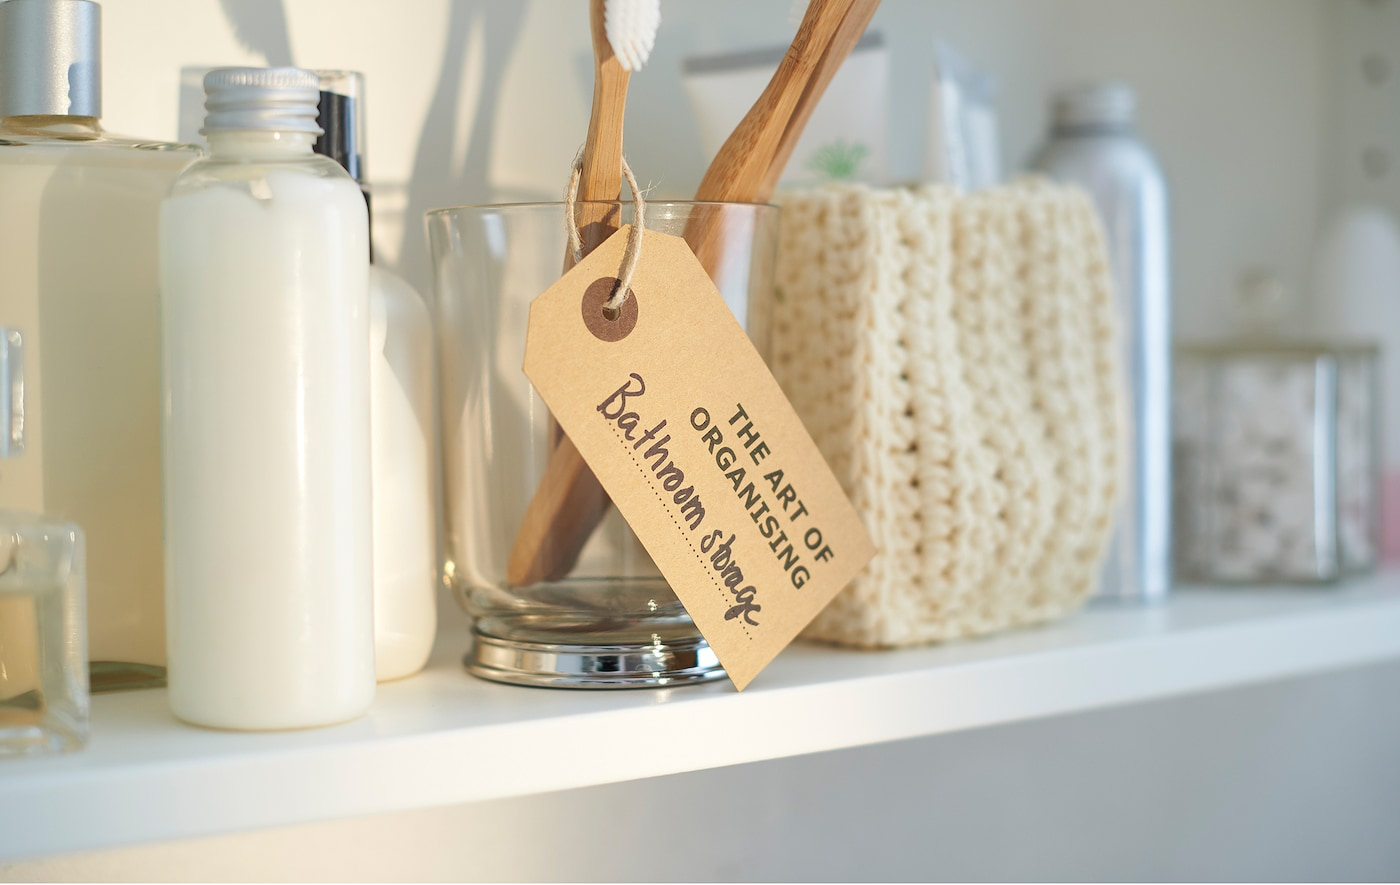 A neatly organised white bathroom shelf with bottles, a woven basket, and a clear glass holding a toothbrush.